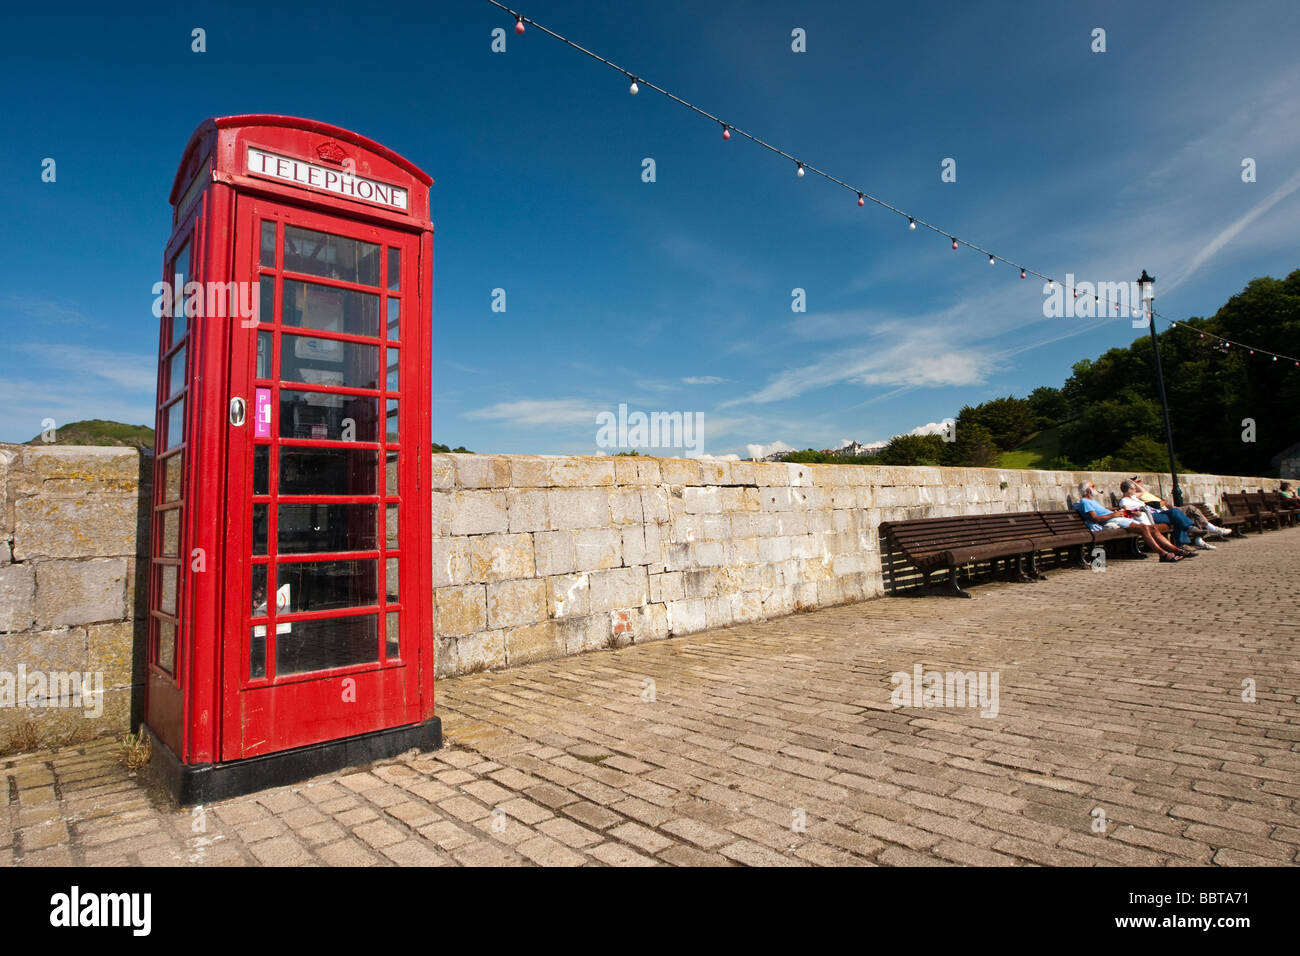 Red British Telephone Box in Ilfracombe Harbour, Devon, England - Stock Image